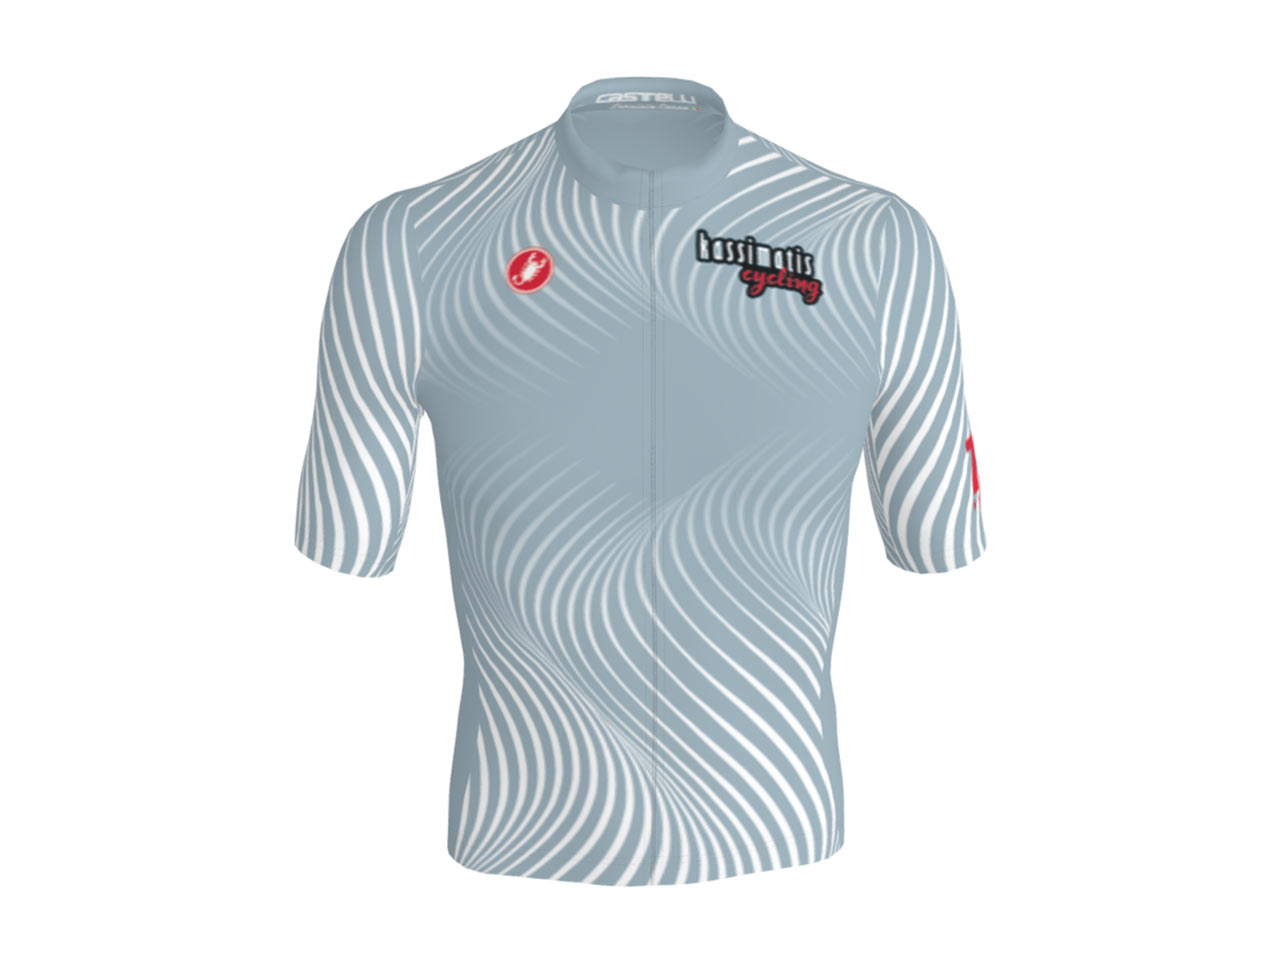 Castelli Kassimatis Cycling Competizione Jersey